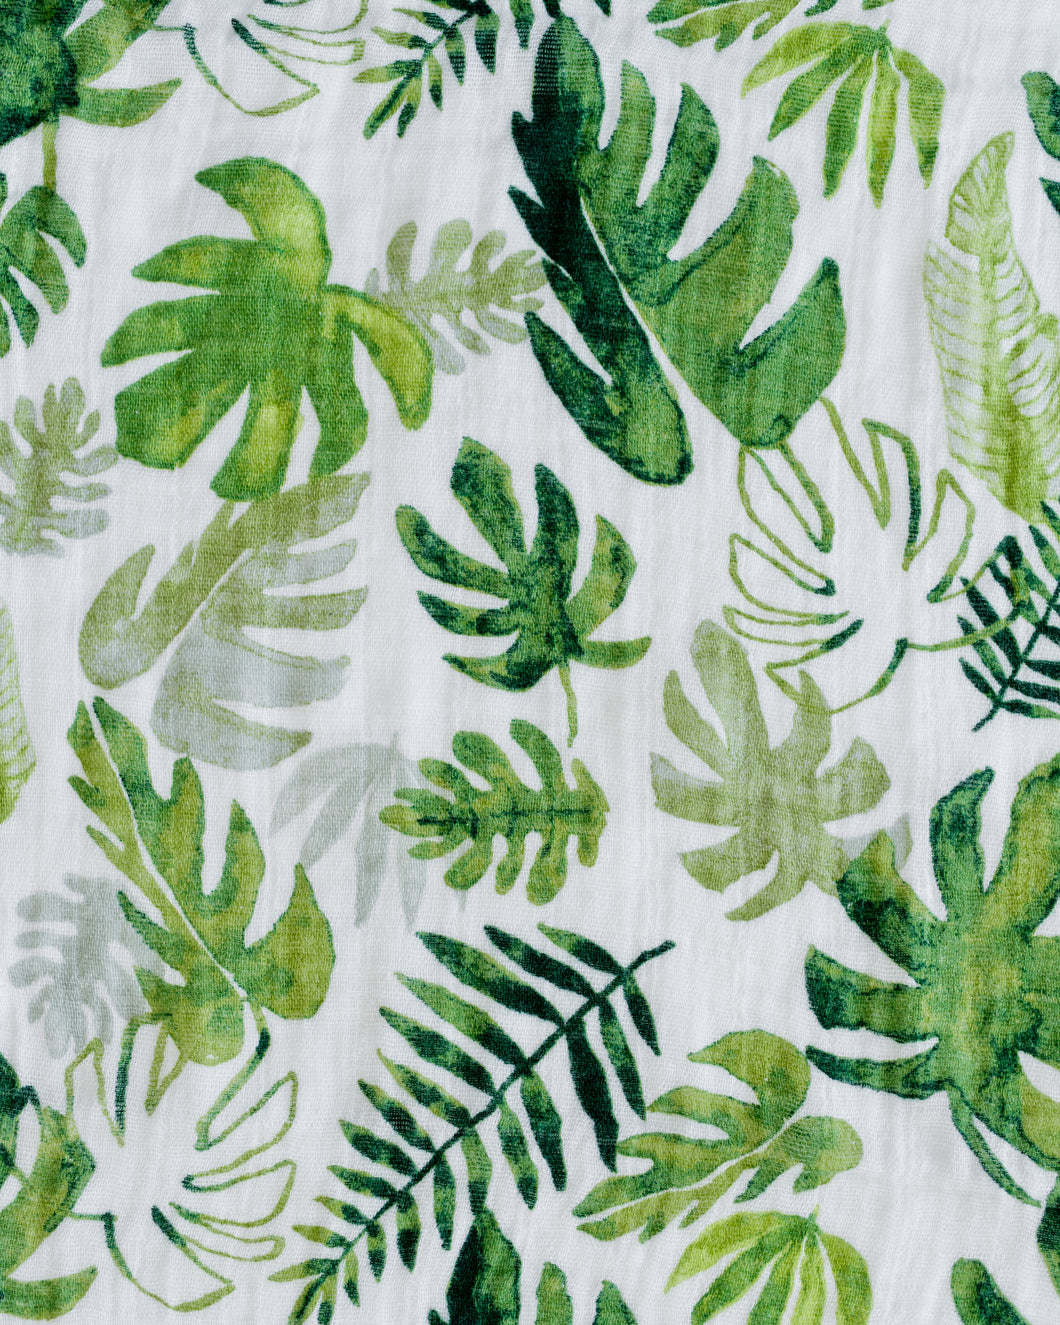 Cotton Muslin Swaddle Blanket in Tropical Leaf